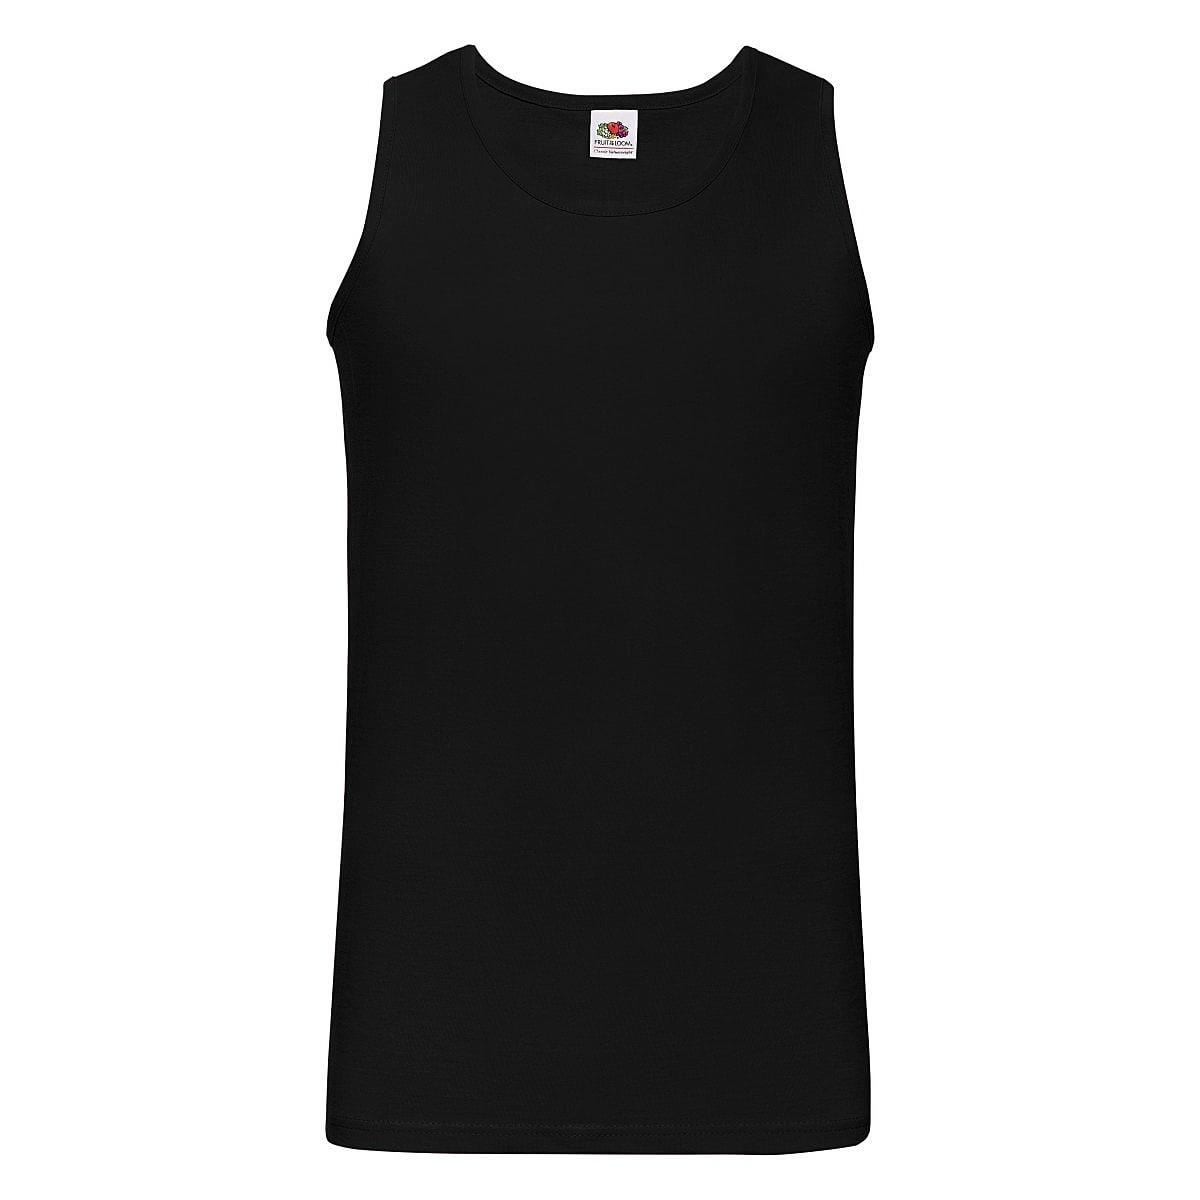 Fruit Of The Loom Athletic Vest in Black (Product Code: 61098)